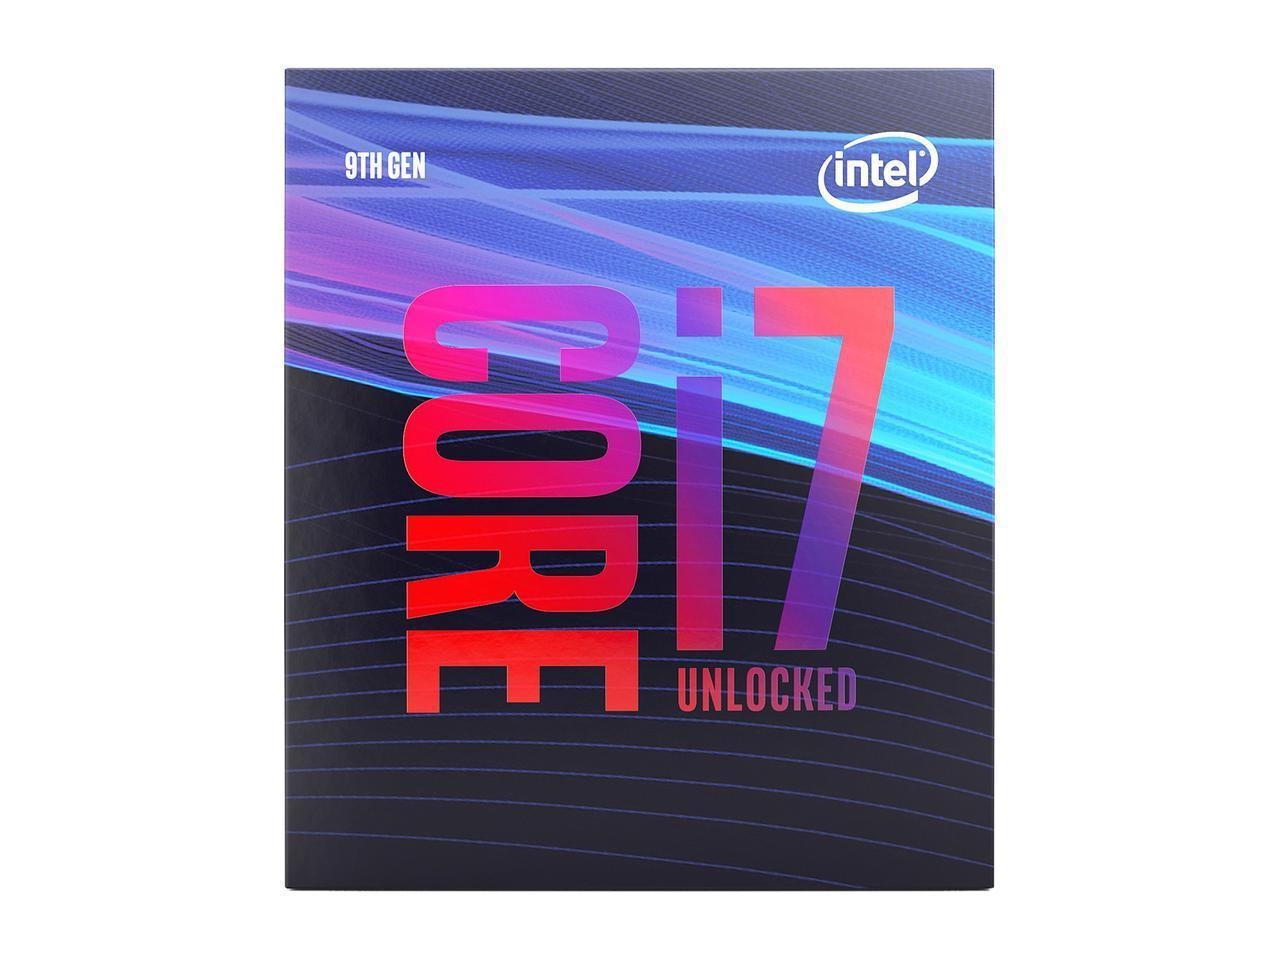 Процесор Intel Coffee Lake Core i7-9700K 3.60GHz (up to 4.90GHz), 12MB, 95W,  LGA1151 (300 Series)-1